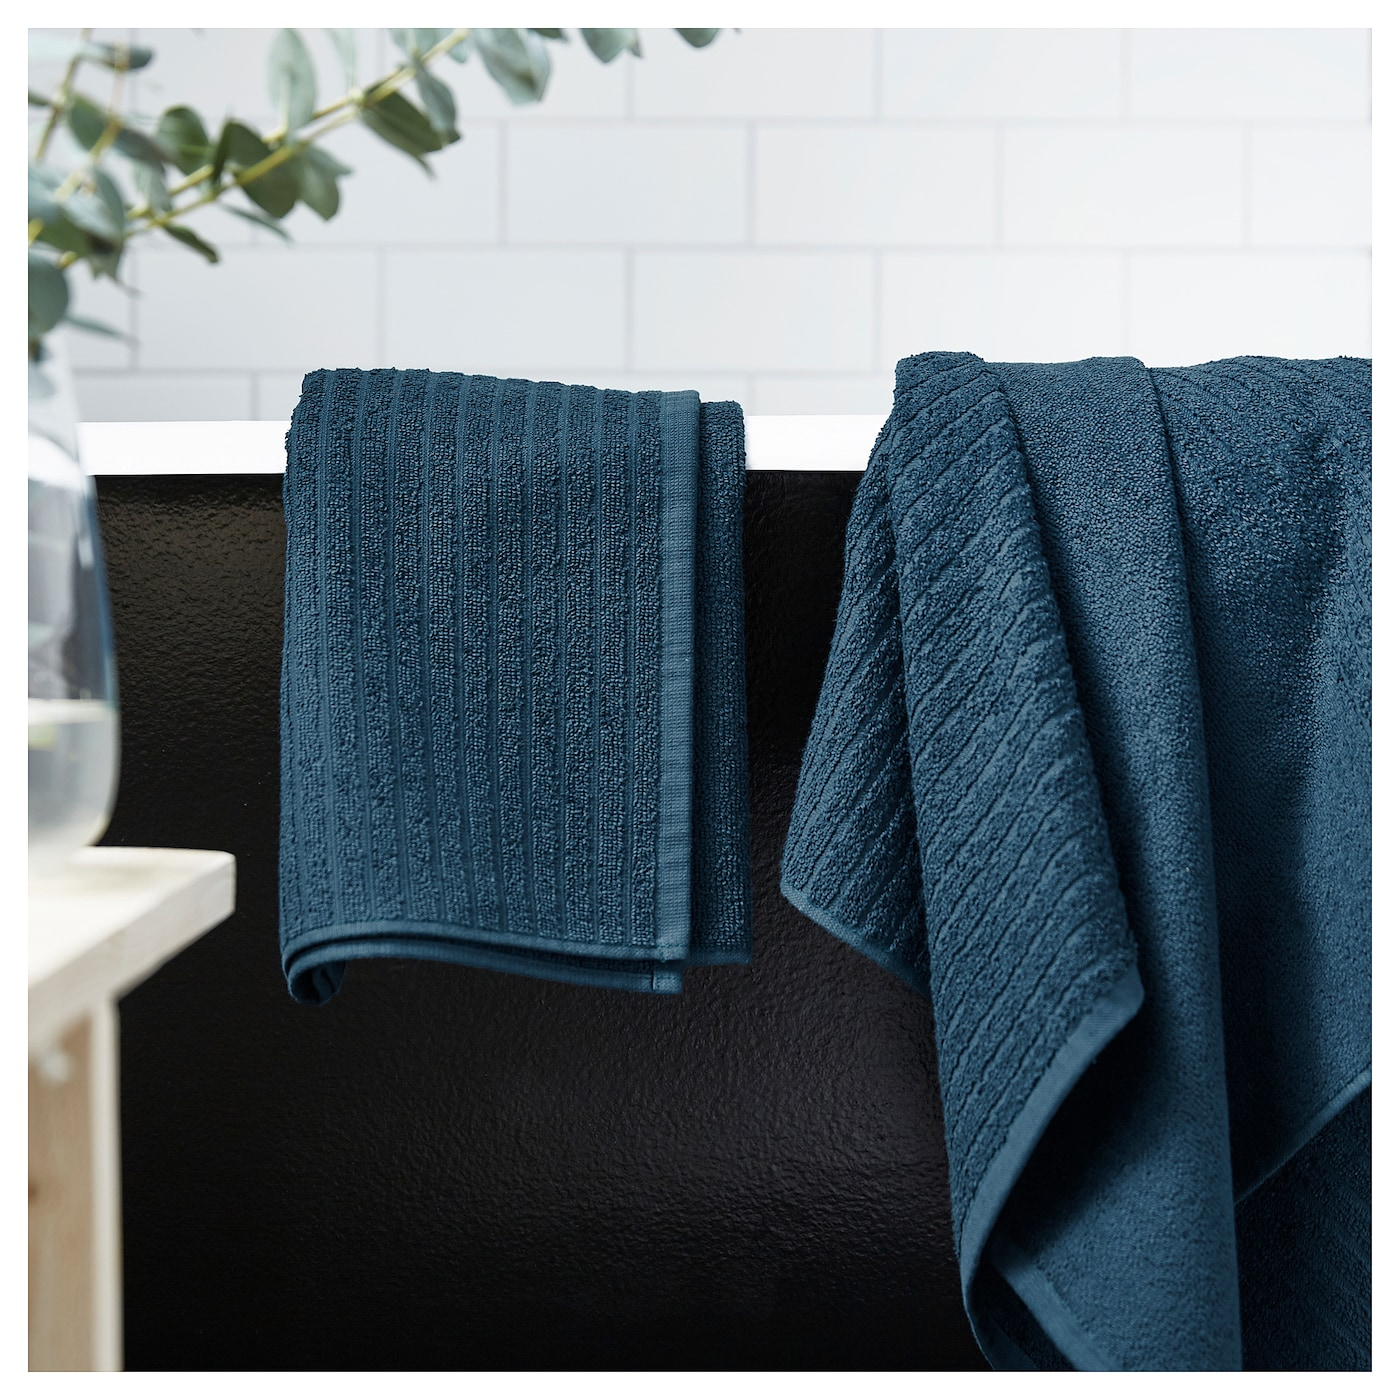 IKEA VÅGSJÖN bath sheet A terry towel that is soft and absorbent (weight 390 g/m²).